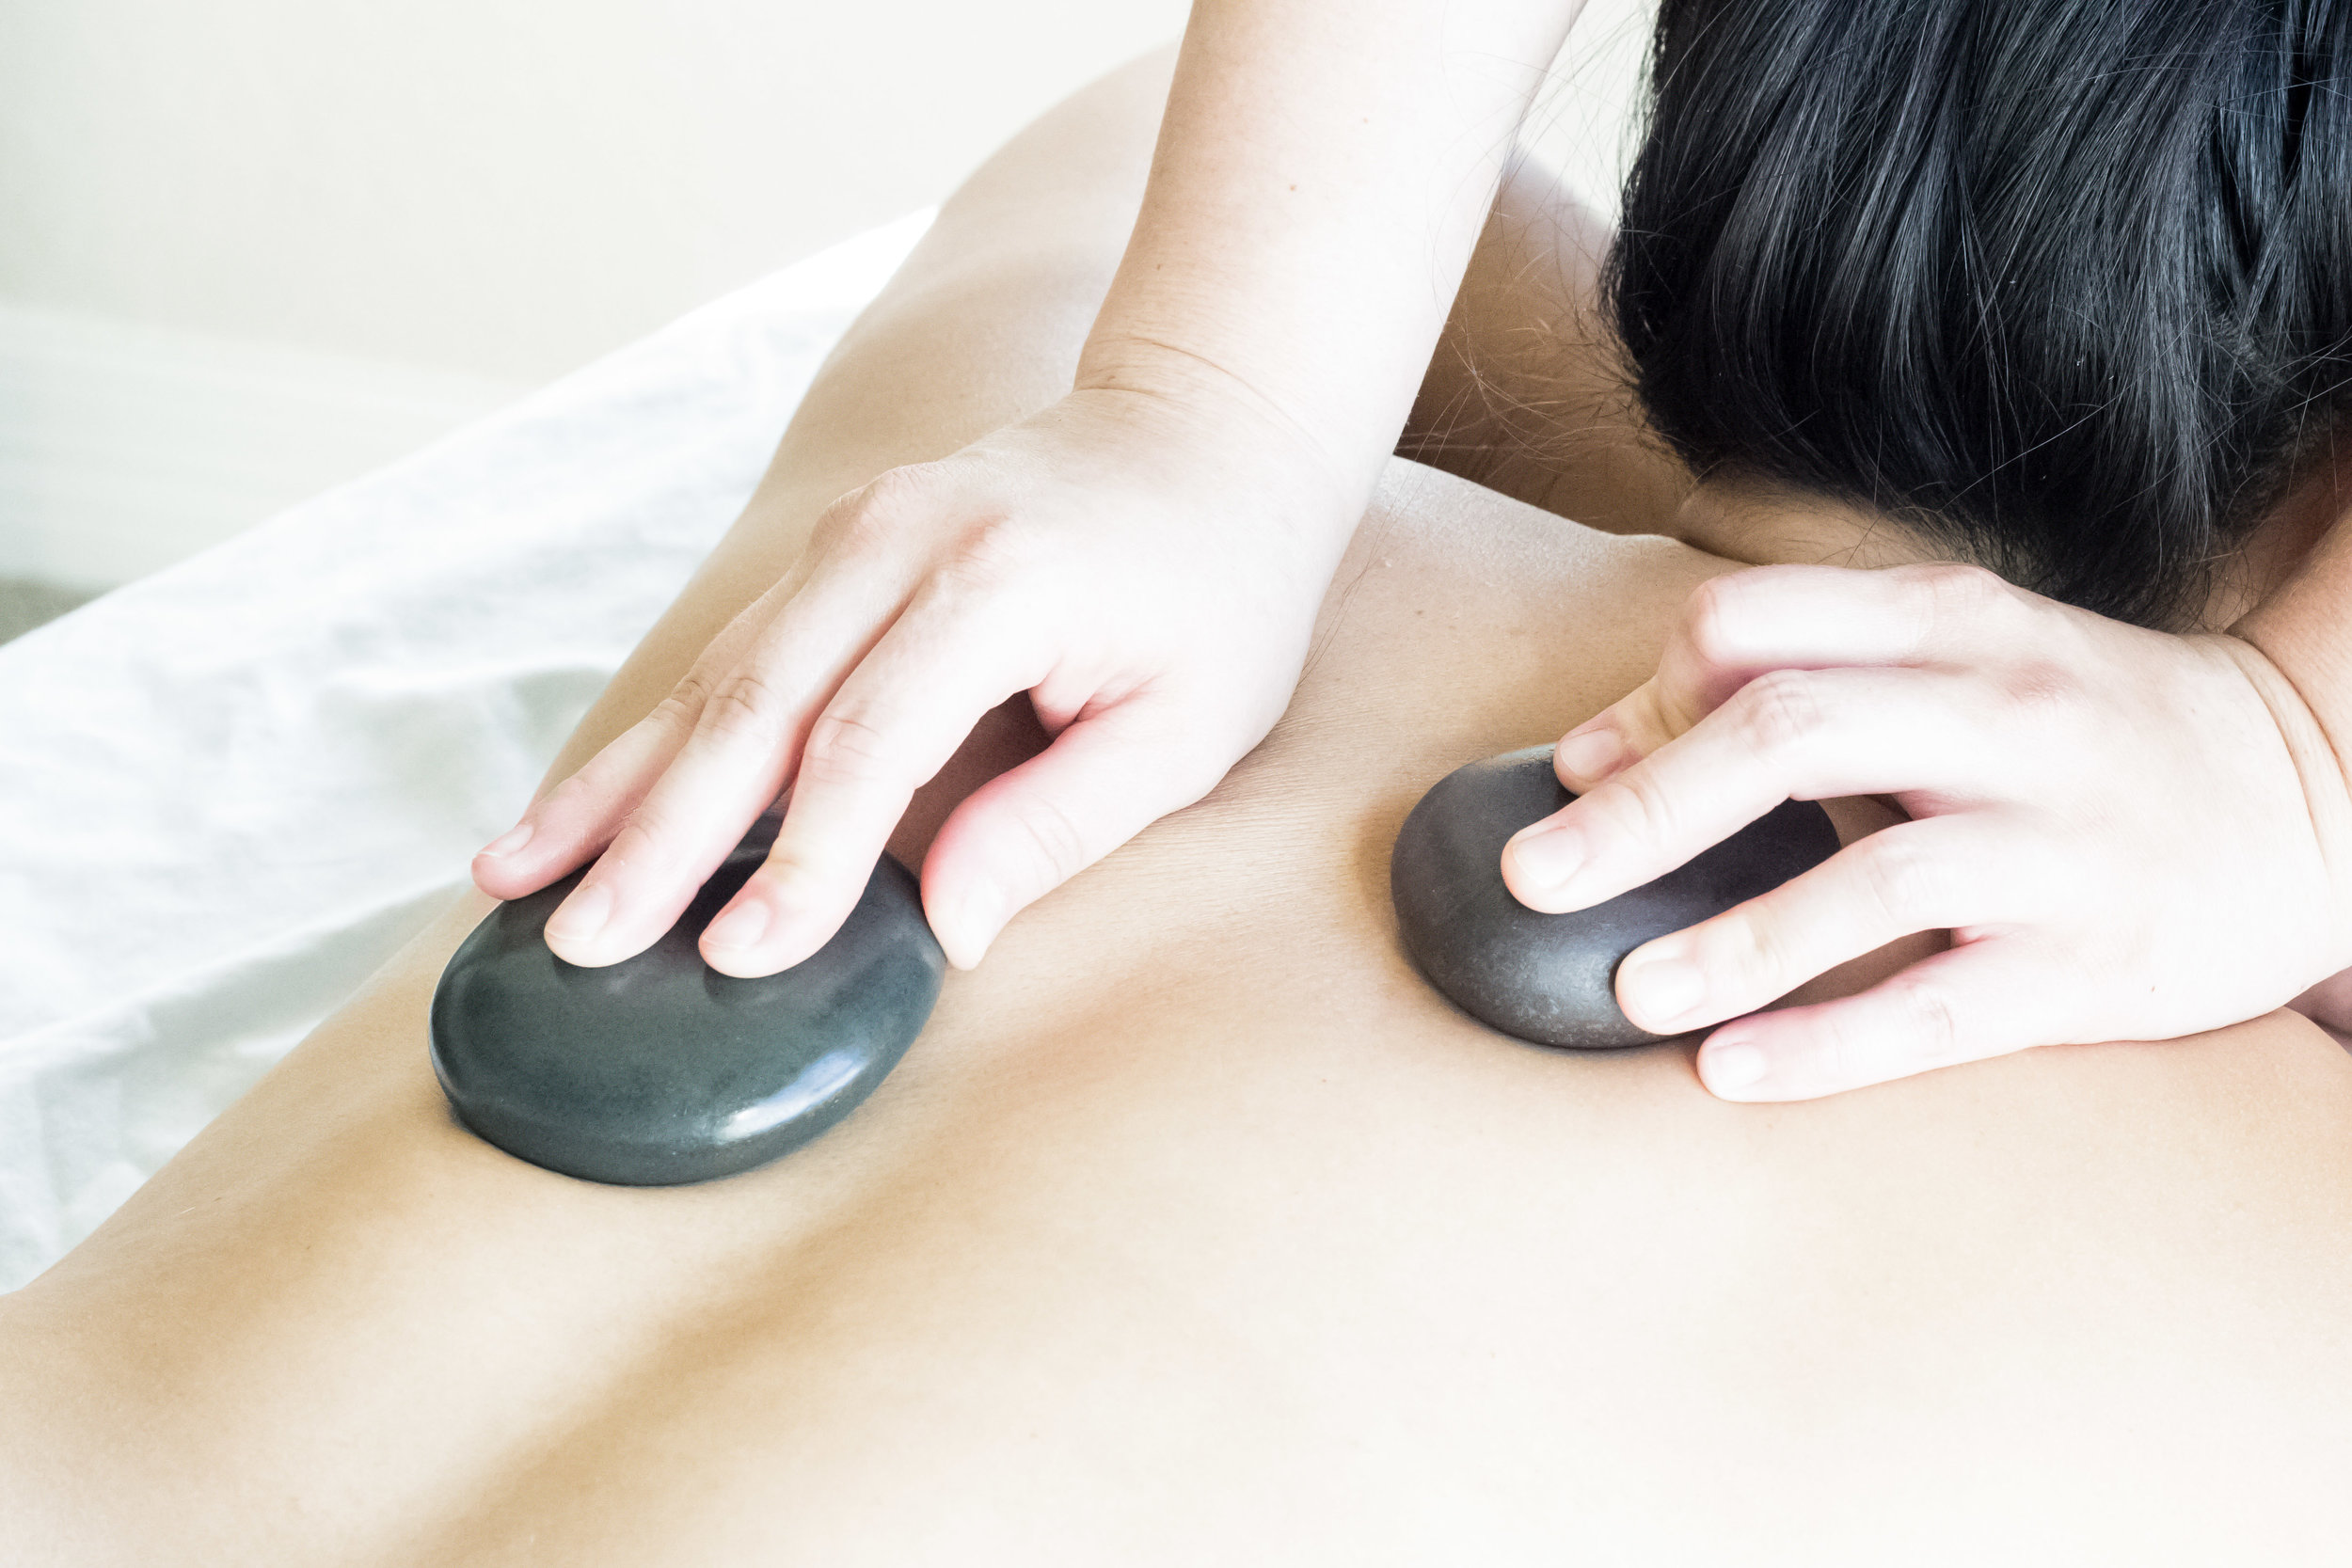 hot stone therapy   Hot Stone Therapy is a form of bodywork that involves the use of heated stones within a massage. Round, smooth stones are heated to a wonderfully warm temperature, and used to massage the body.The heat penetrates the muscle tissue, allowing the therapist to work deeper and faster. The heat helps to melt away tension, eases muscle stiffness and increases circulation. The hot stones create a sedative effect that can help to relieve pain, reduce stress and promote deep relaxation.